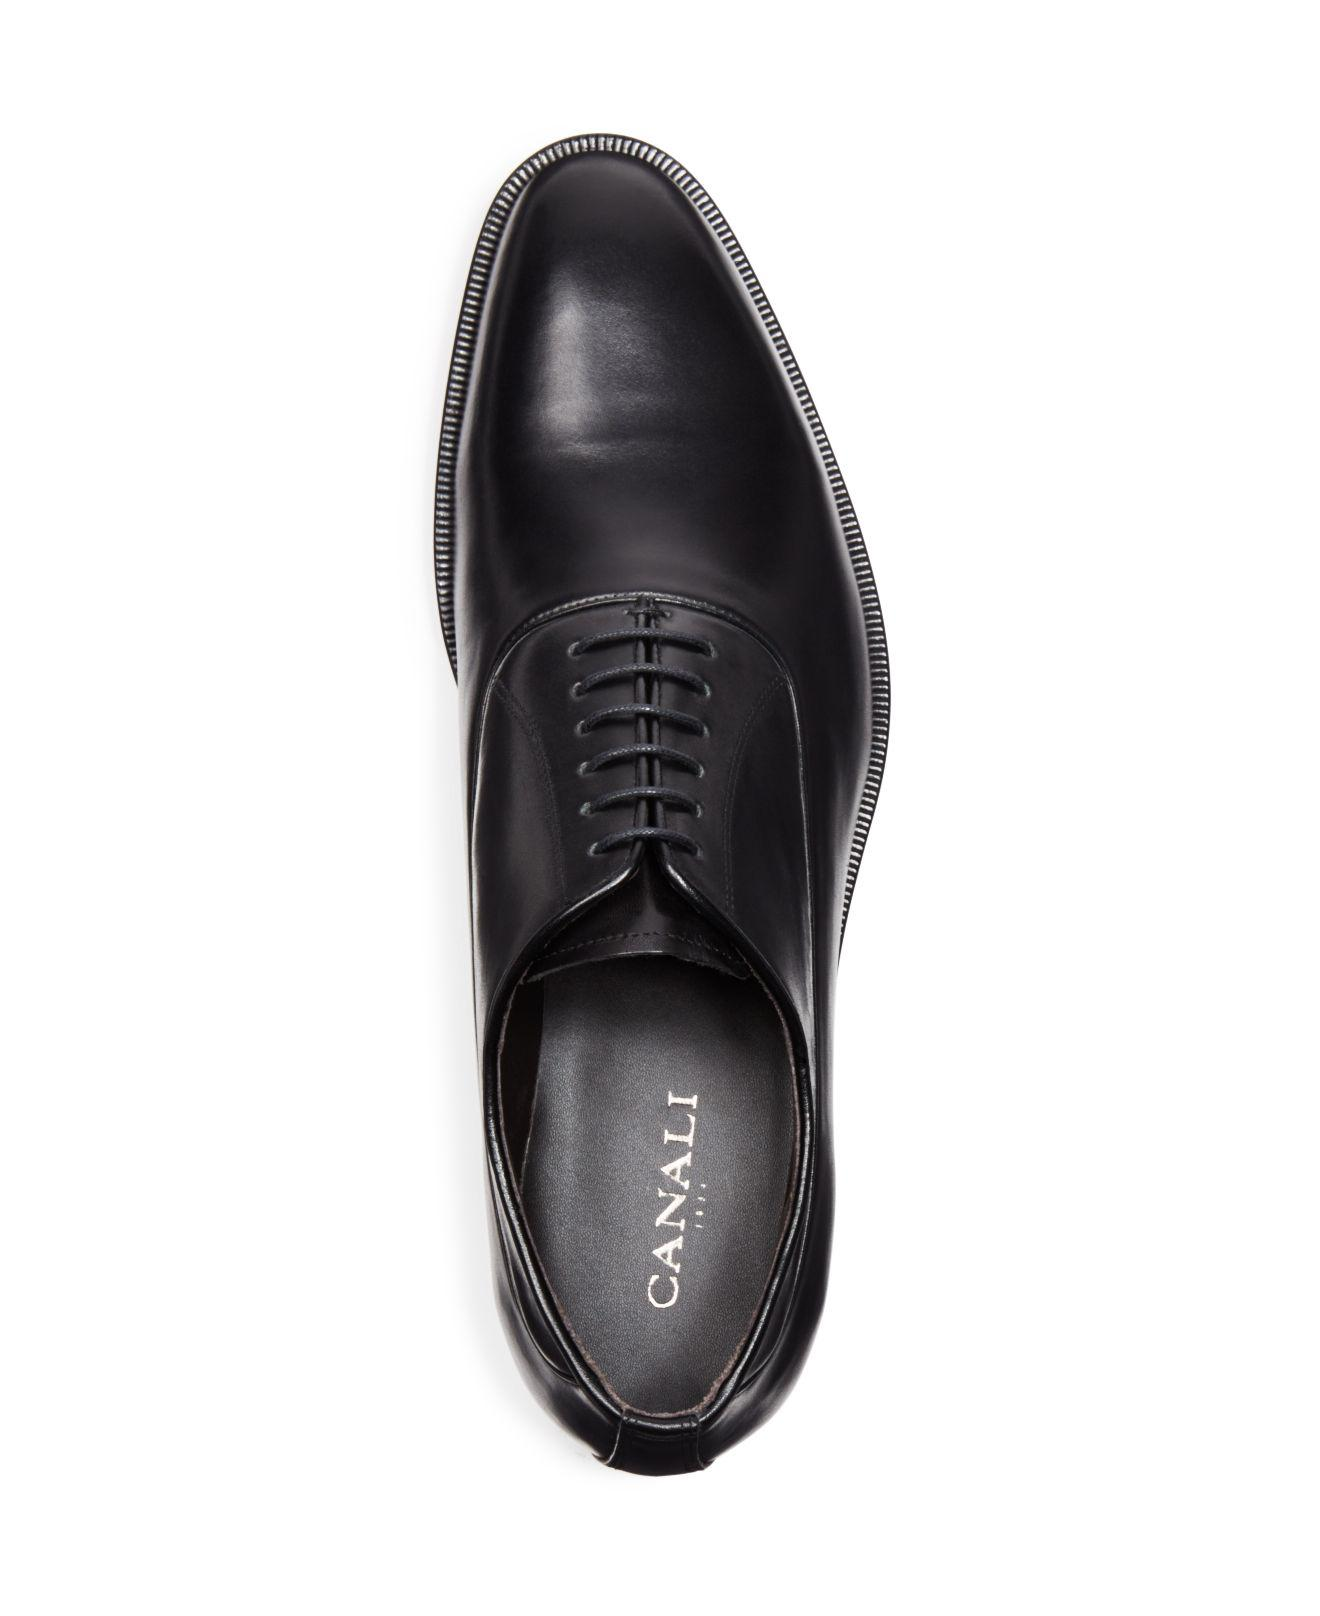 CANALIStock Oxford Shoes